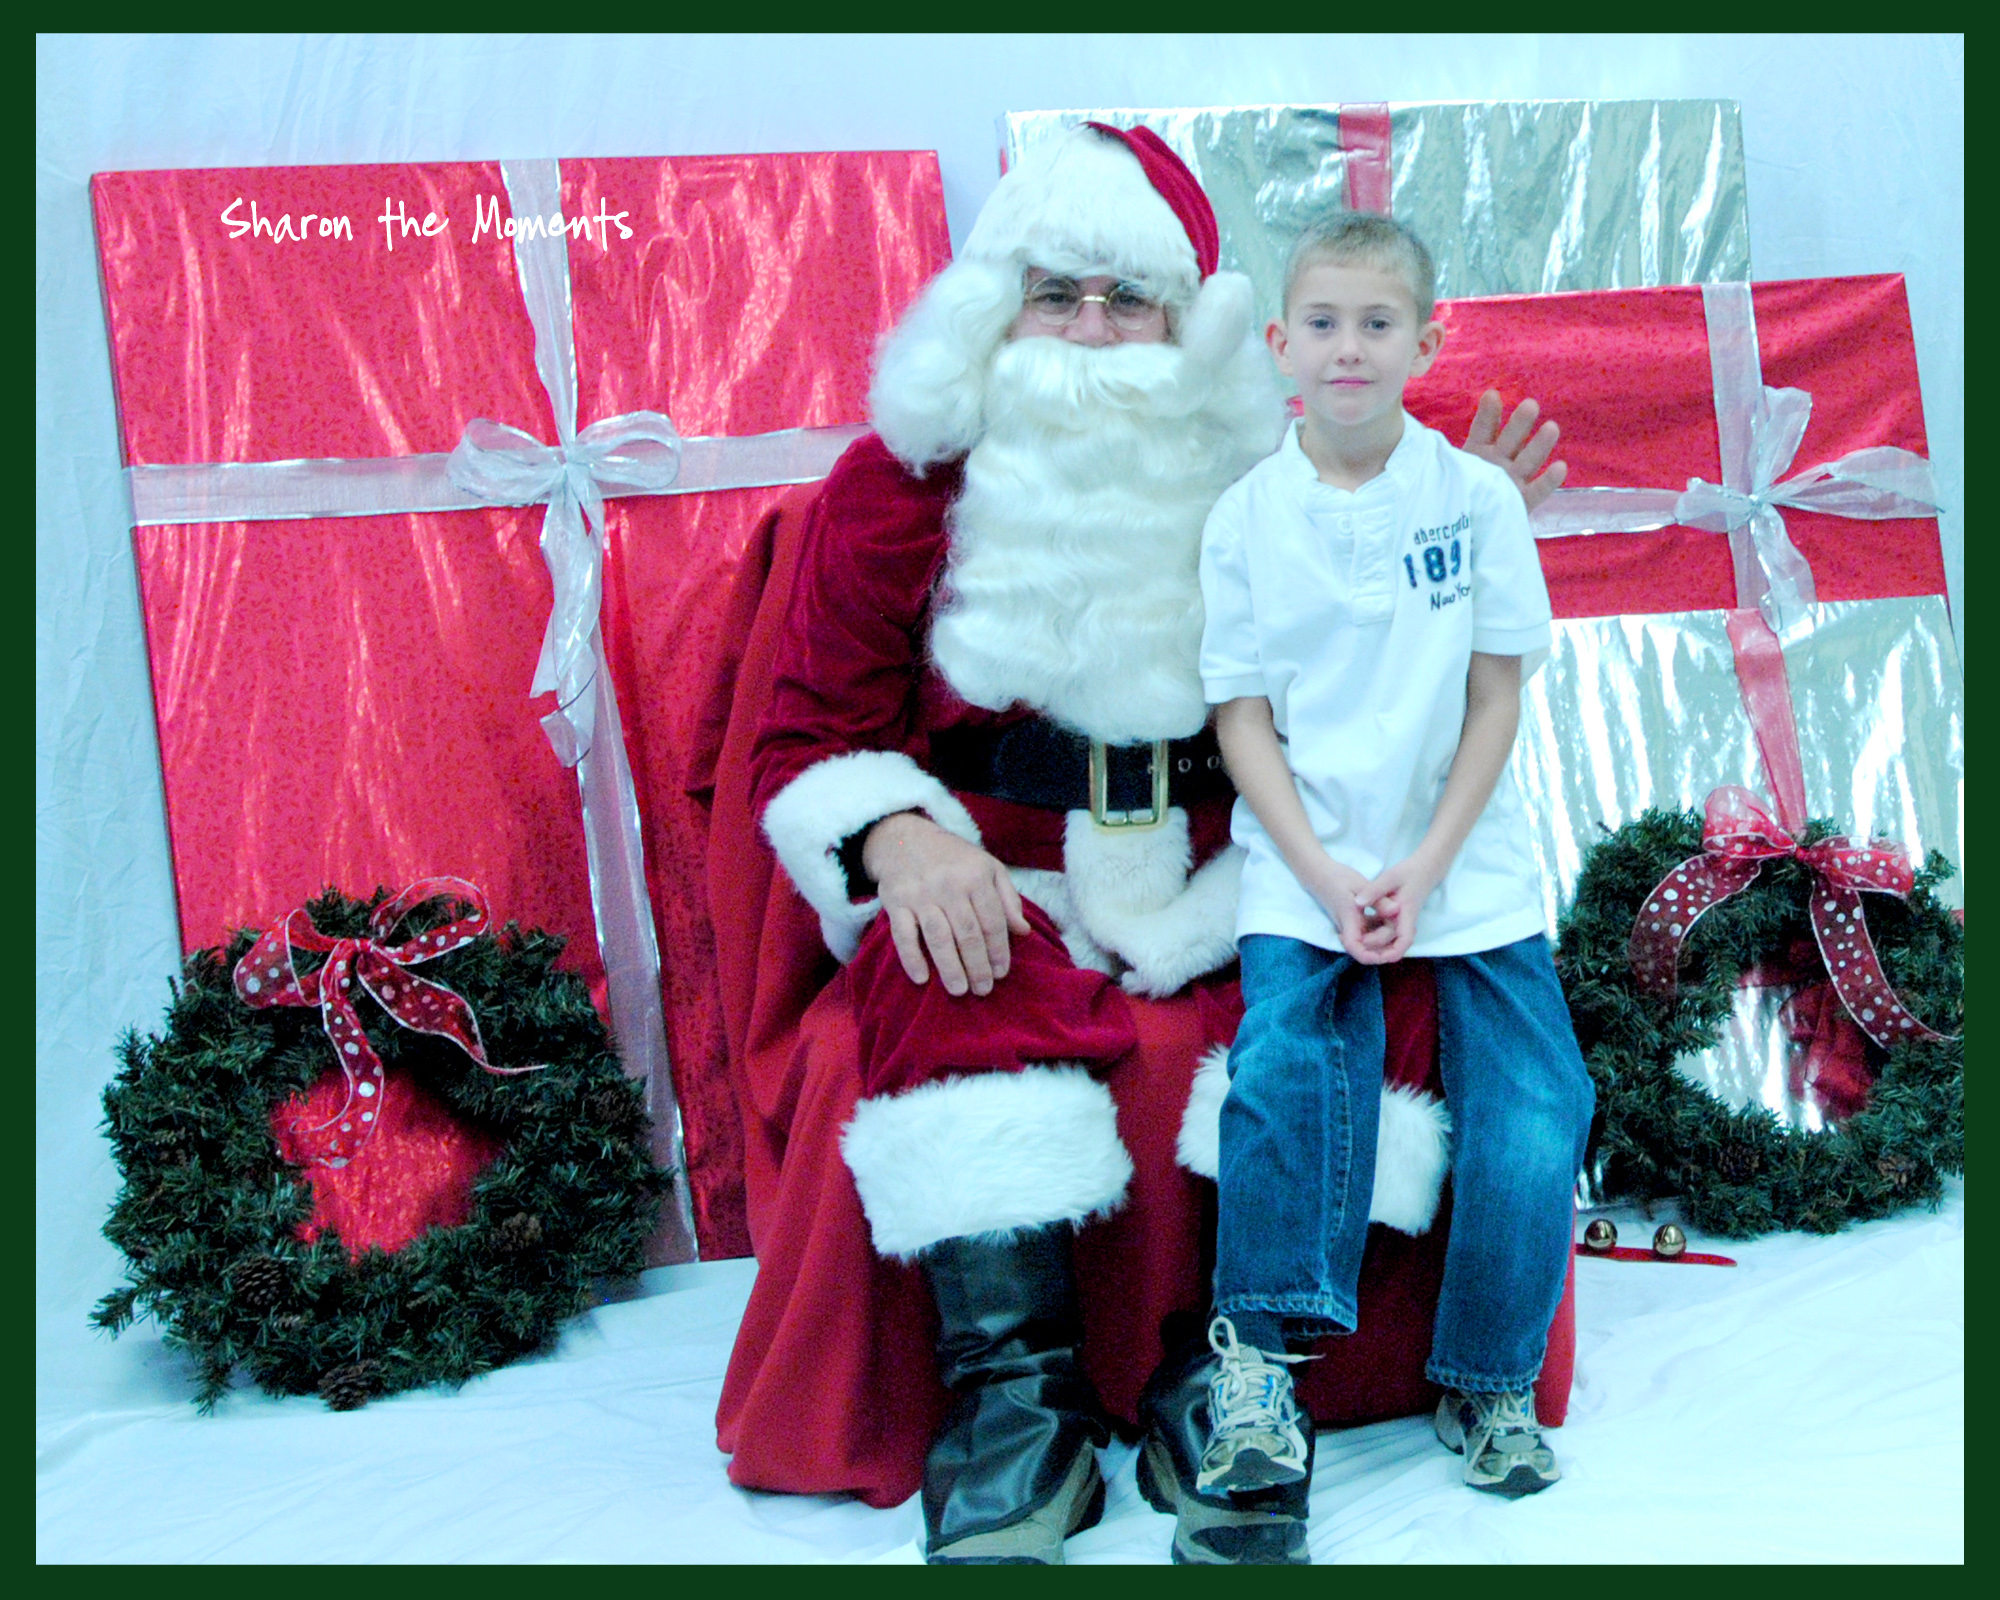 Talking to Santa Claus|Sharon the Moments blog